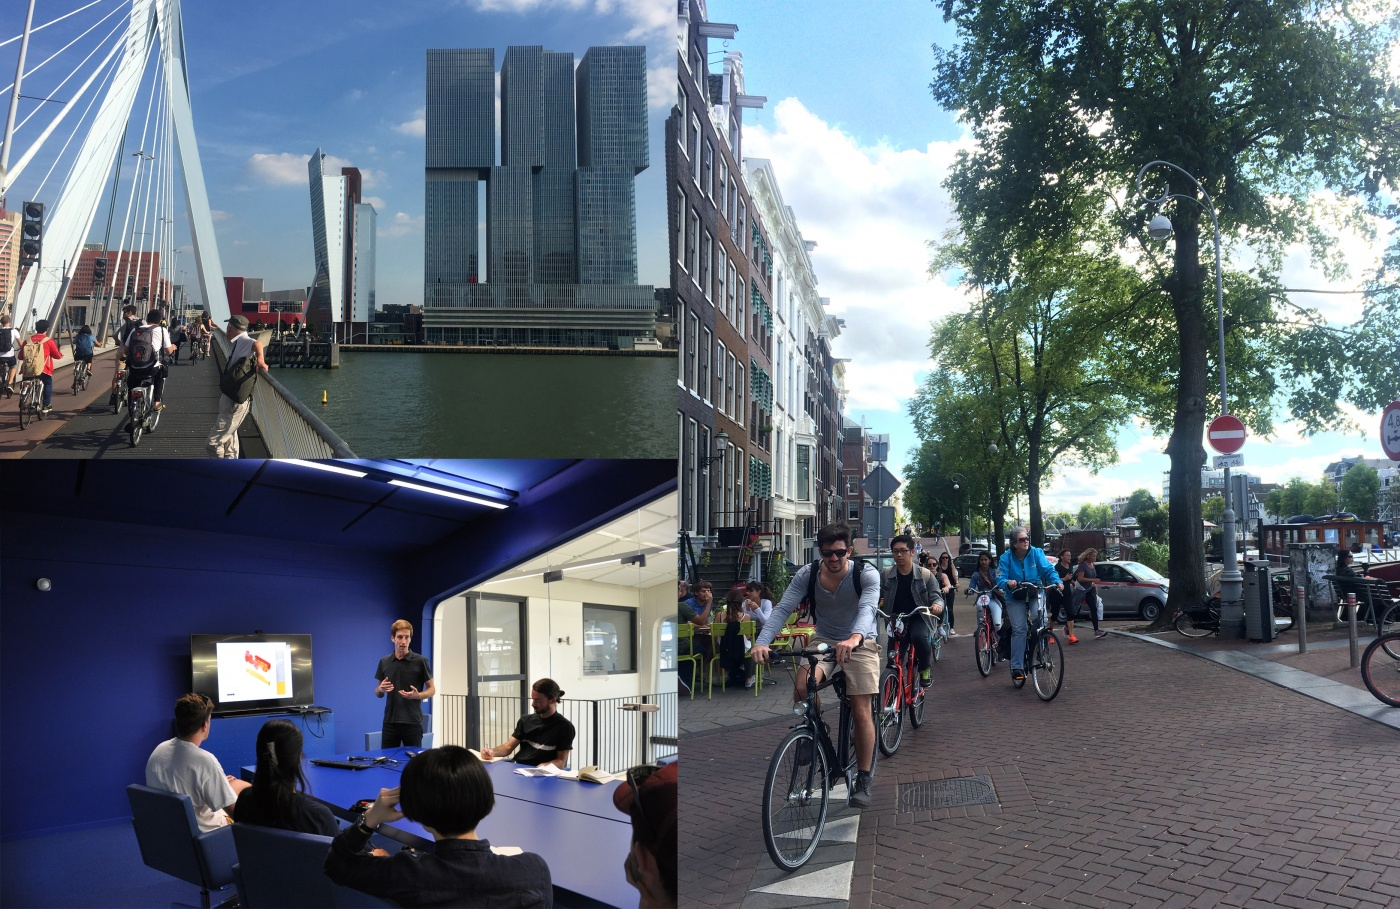 Clockwise from top: Students visit De Rotterdam designed by Rem Koolhaas; students cycling through the streets of Amsterdam; students taking part in a workshop at MVRDV offices. Image credits: Katherine Sundermann & Andy Fergus